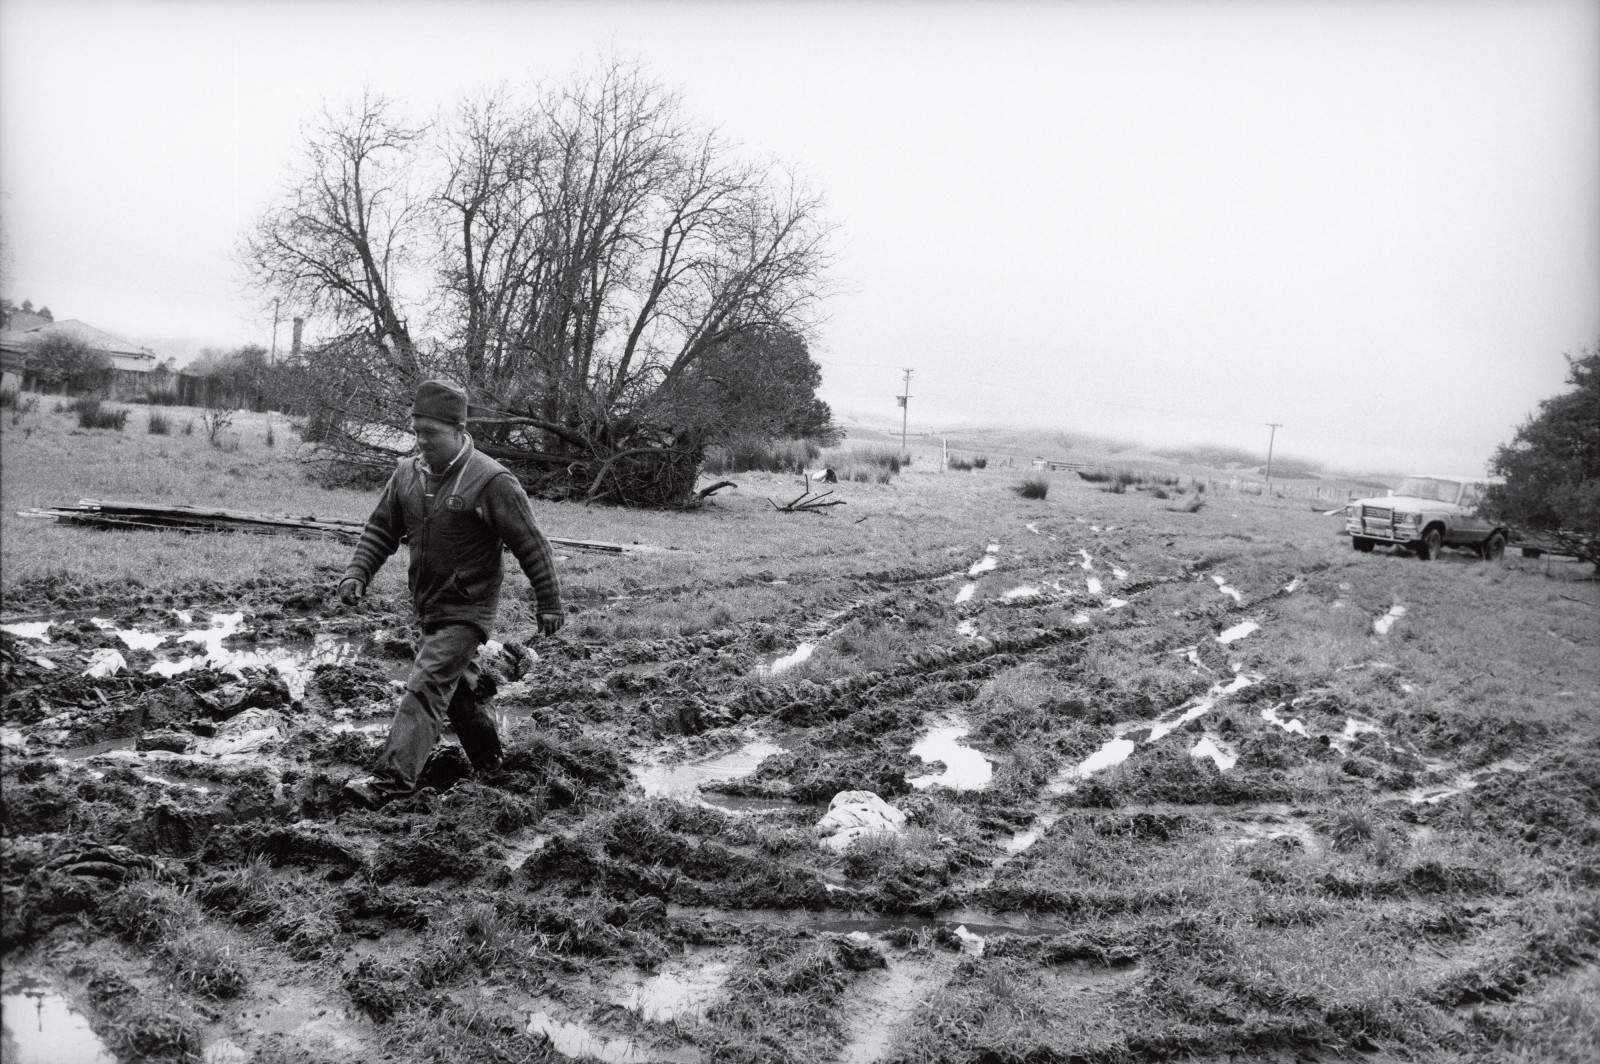 Dave MacGibbon crosses the winter slush of a tyre-marked paddock on a mission to borrow timber for a new fence from his neighbour, Bruce McNaughton.